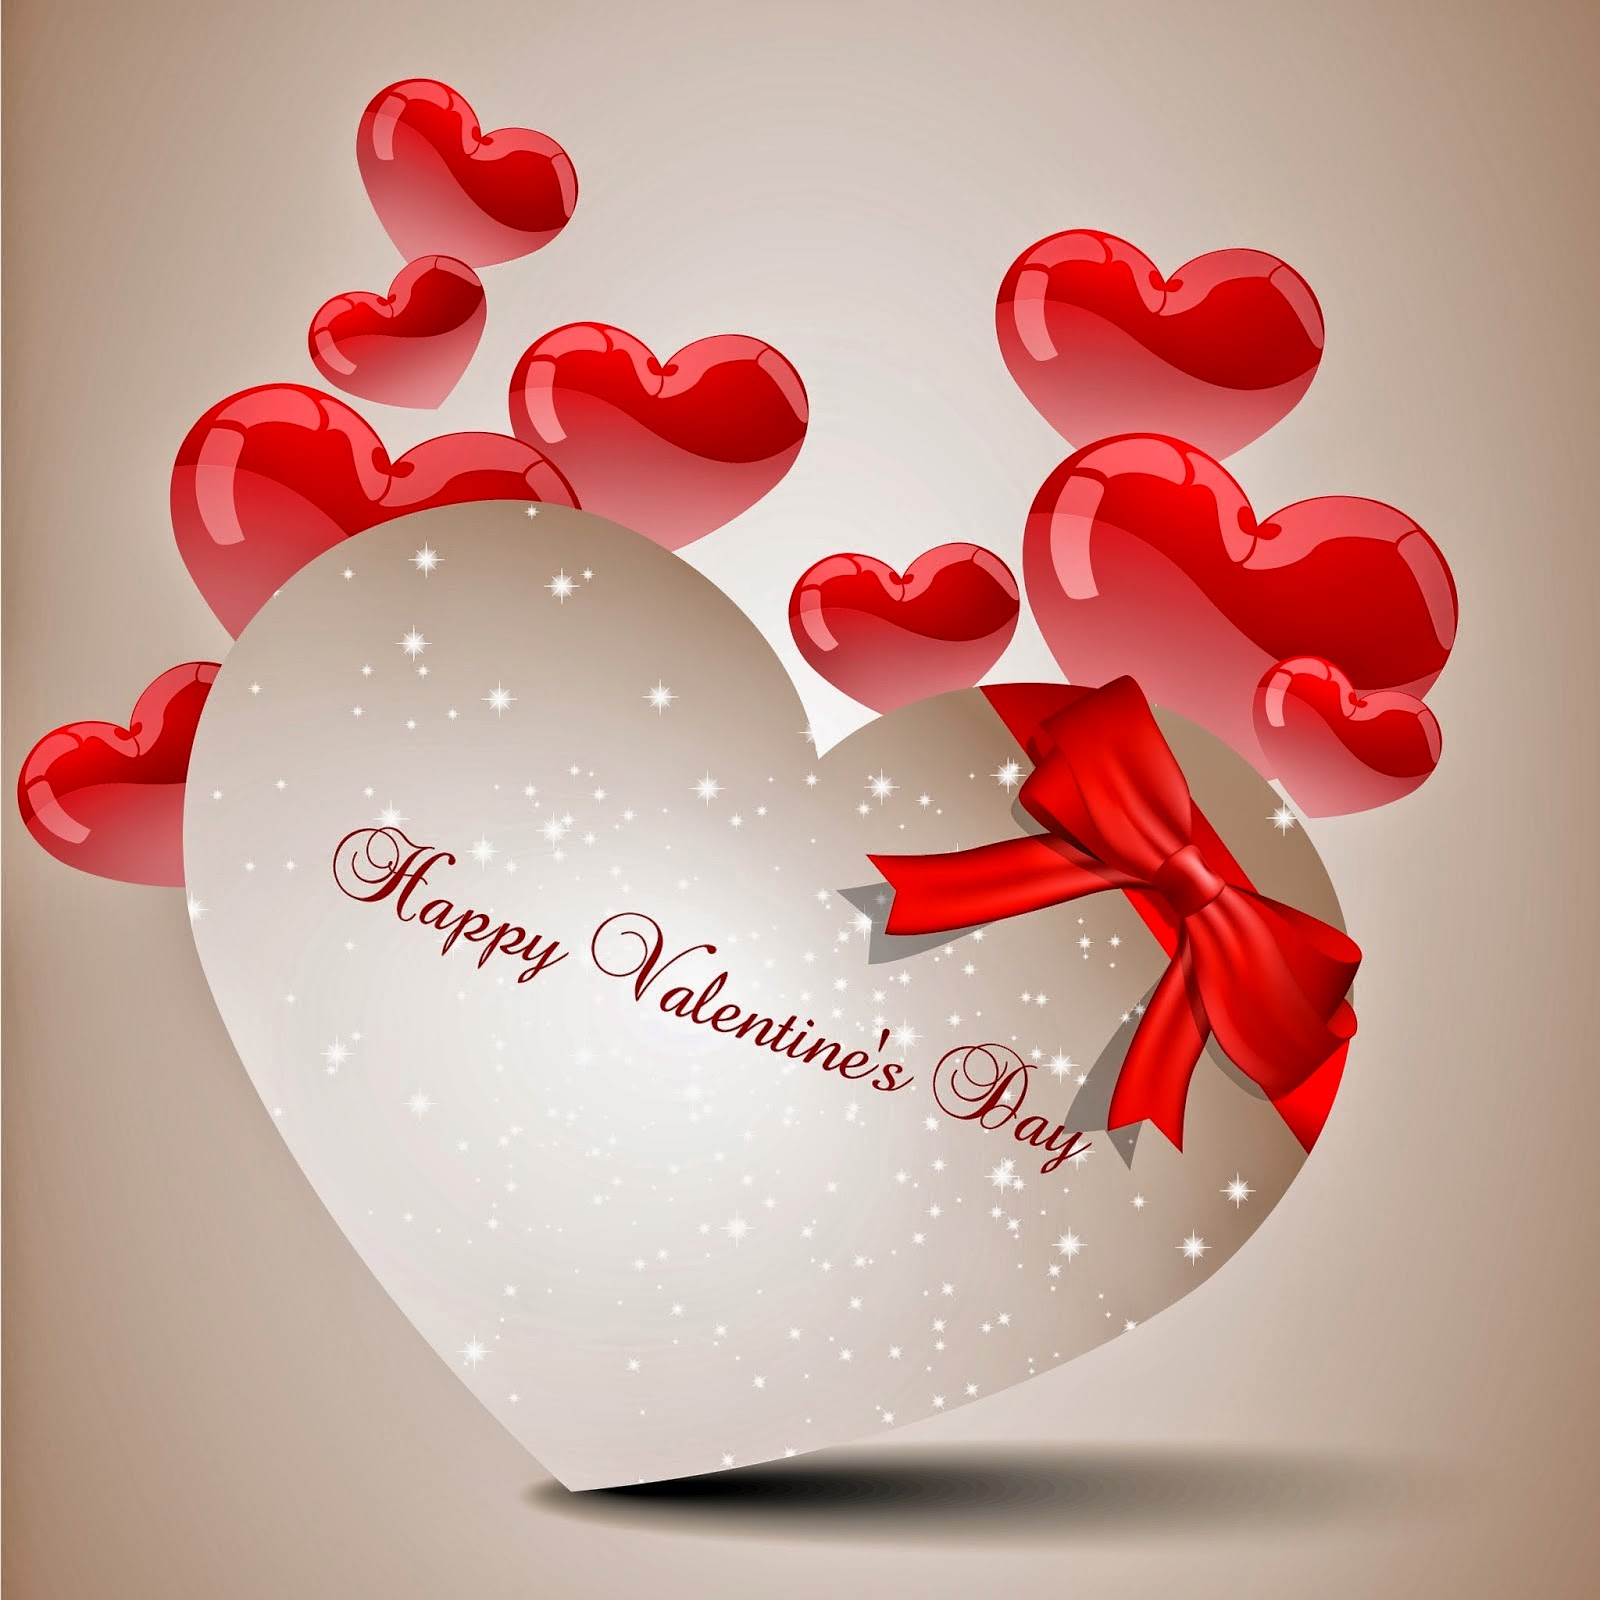 Happy Valentines Day 2015 greetings, wallpapers, images, sms.